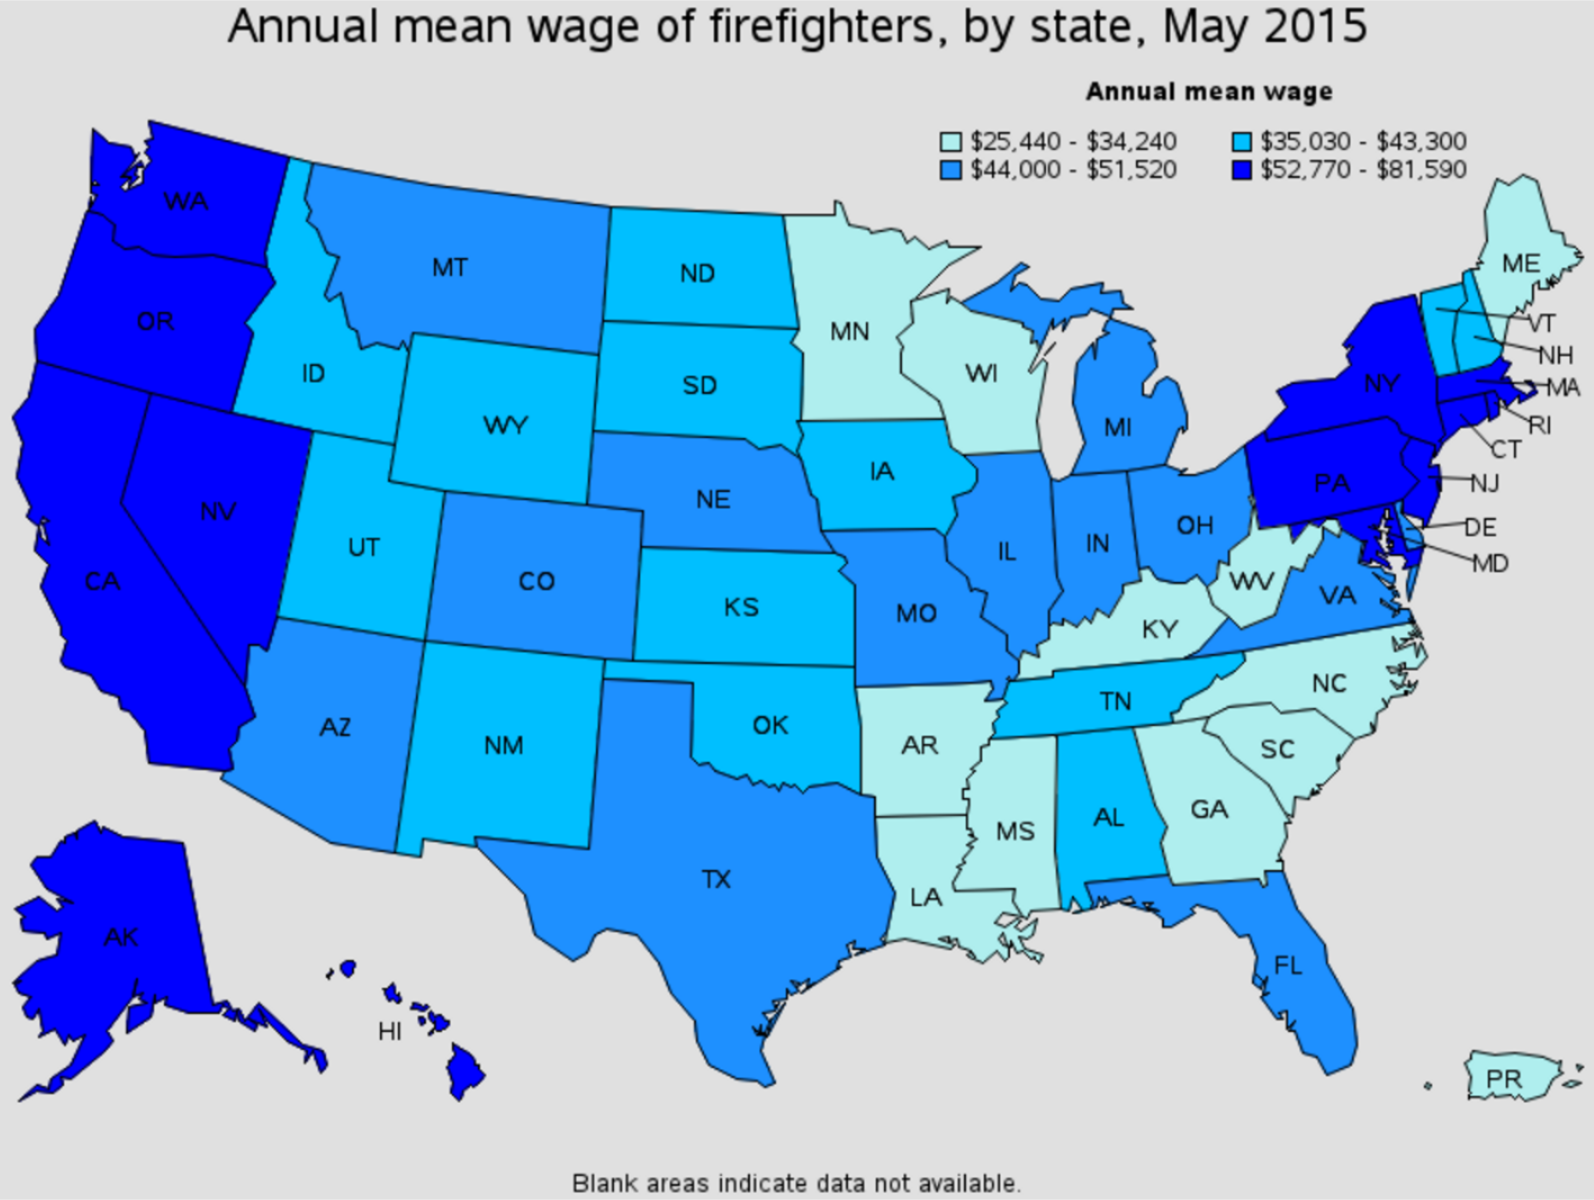 firefighter average salary by state Midland Texas